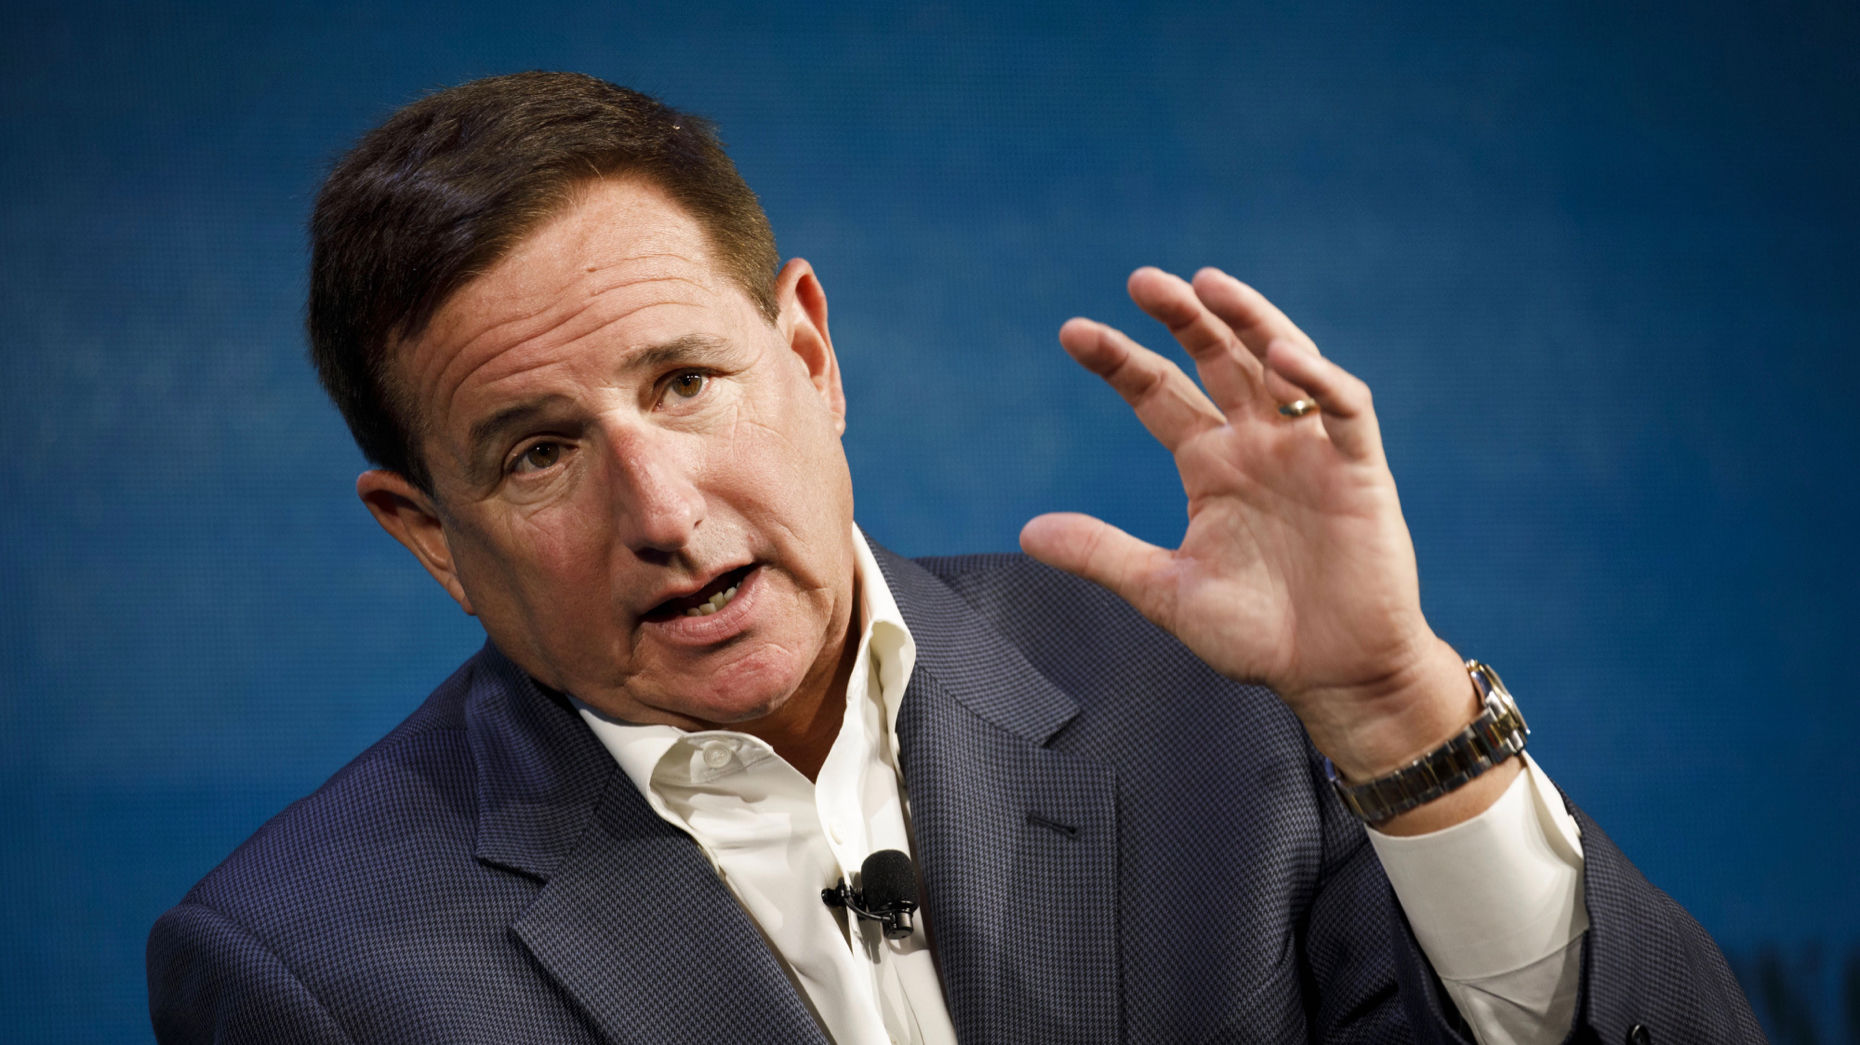 Oracle CEO Mark Hurd at an event last year. Photo by Bloomberg